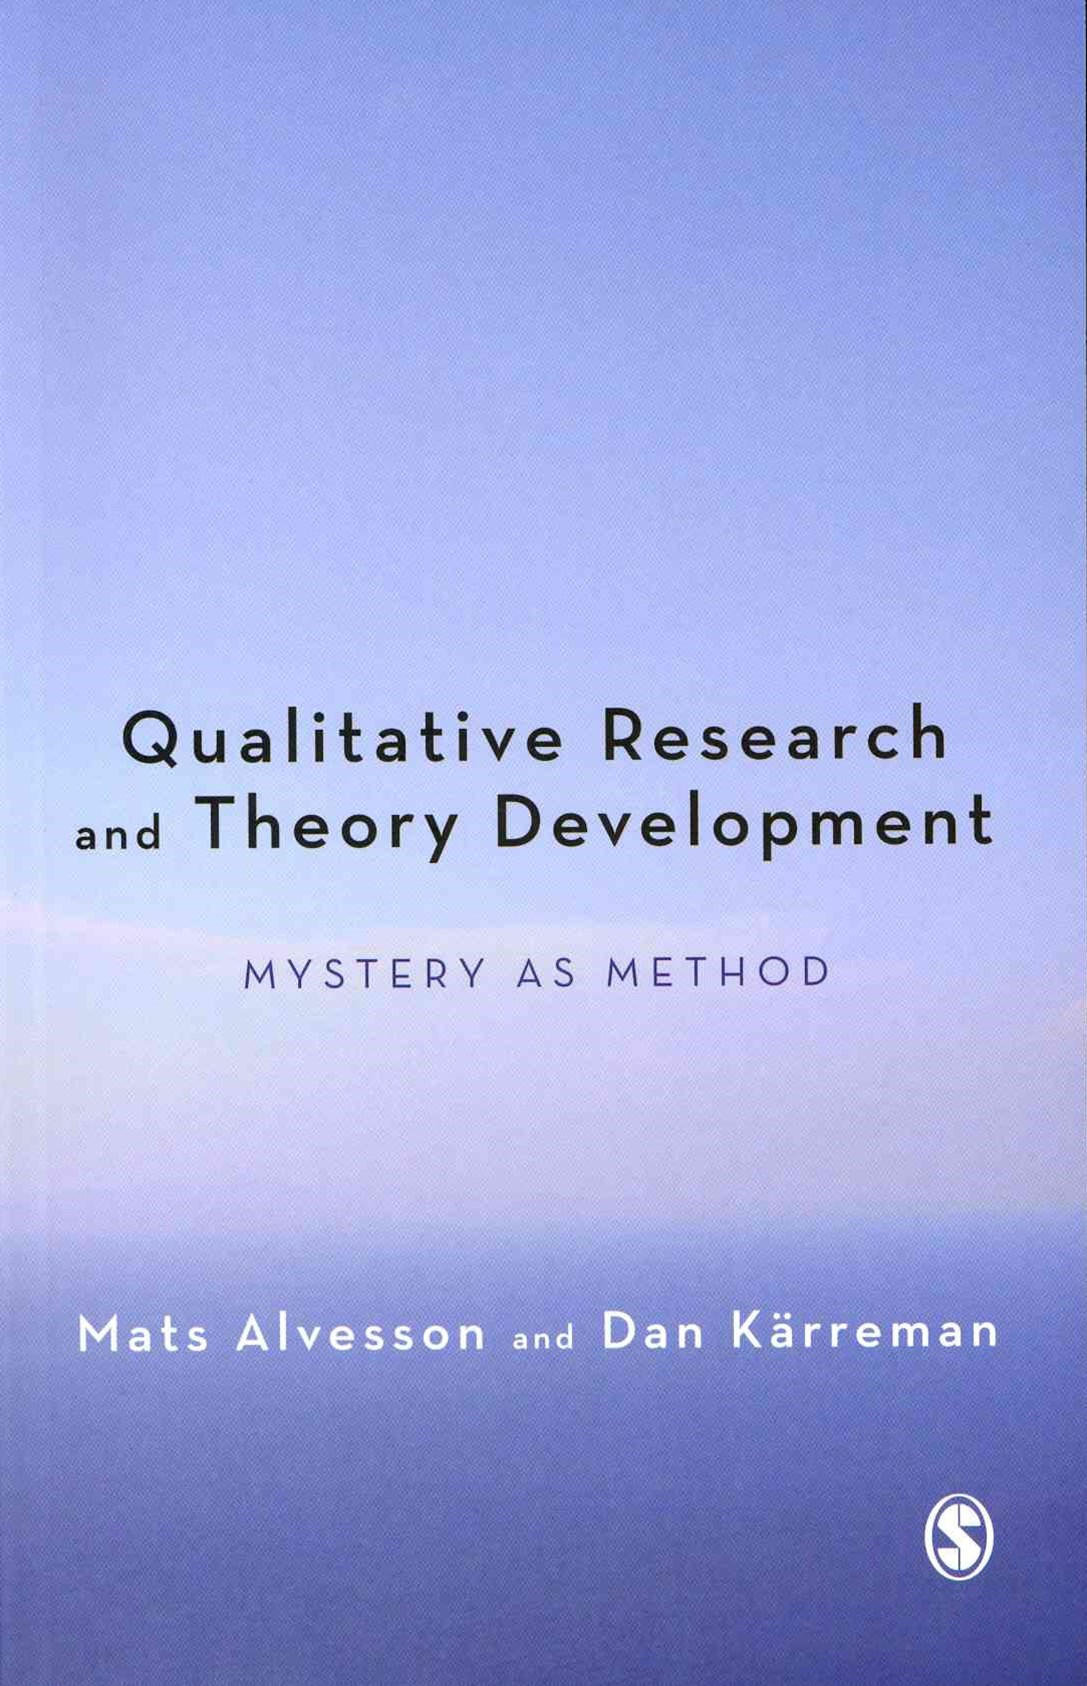 Qualitative Research and Theory Development